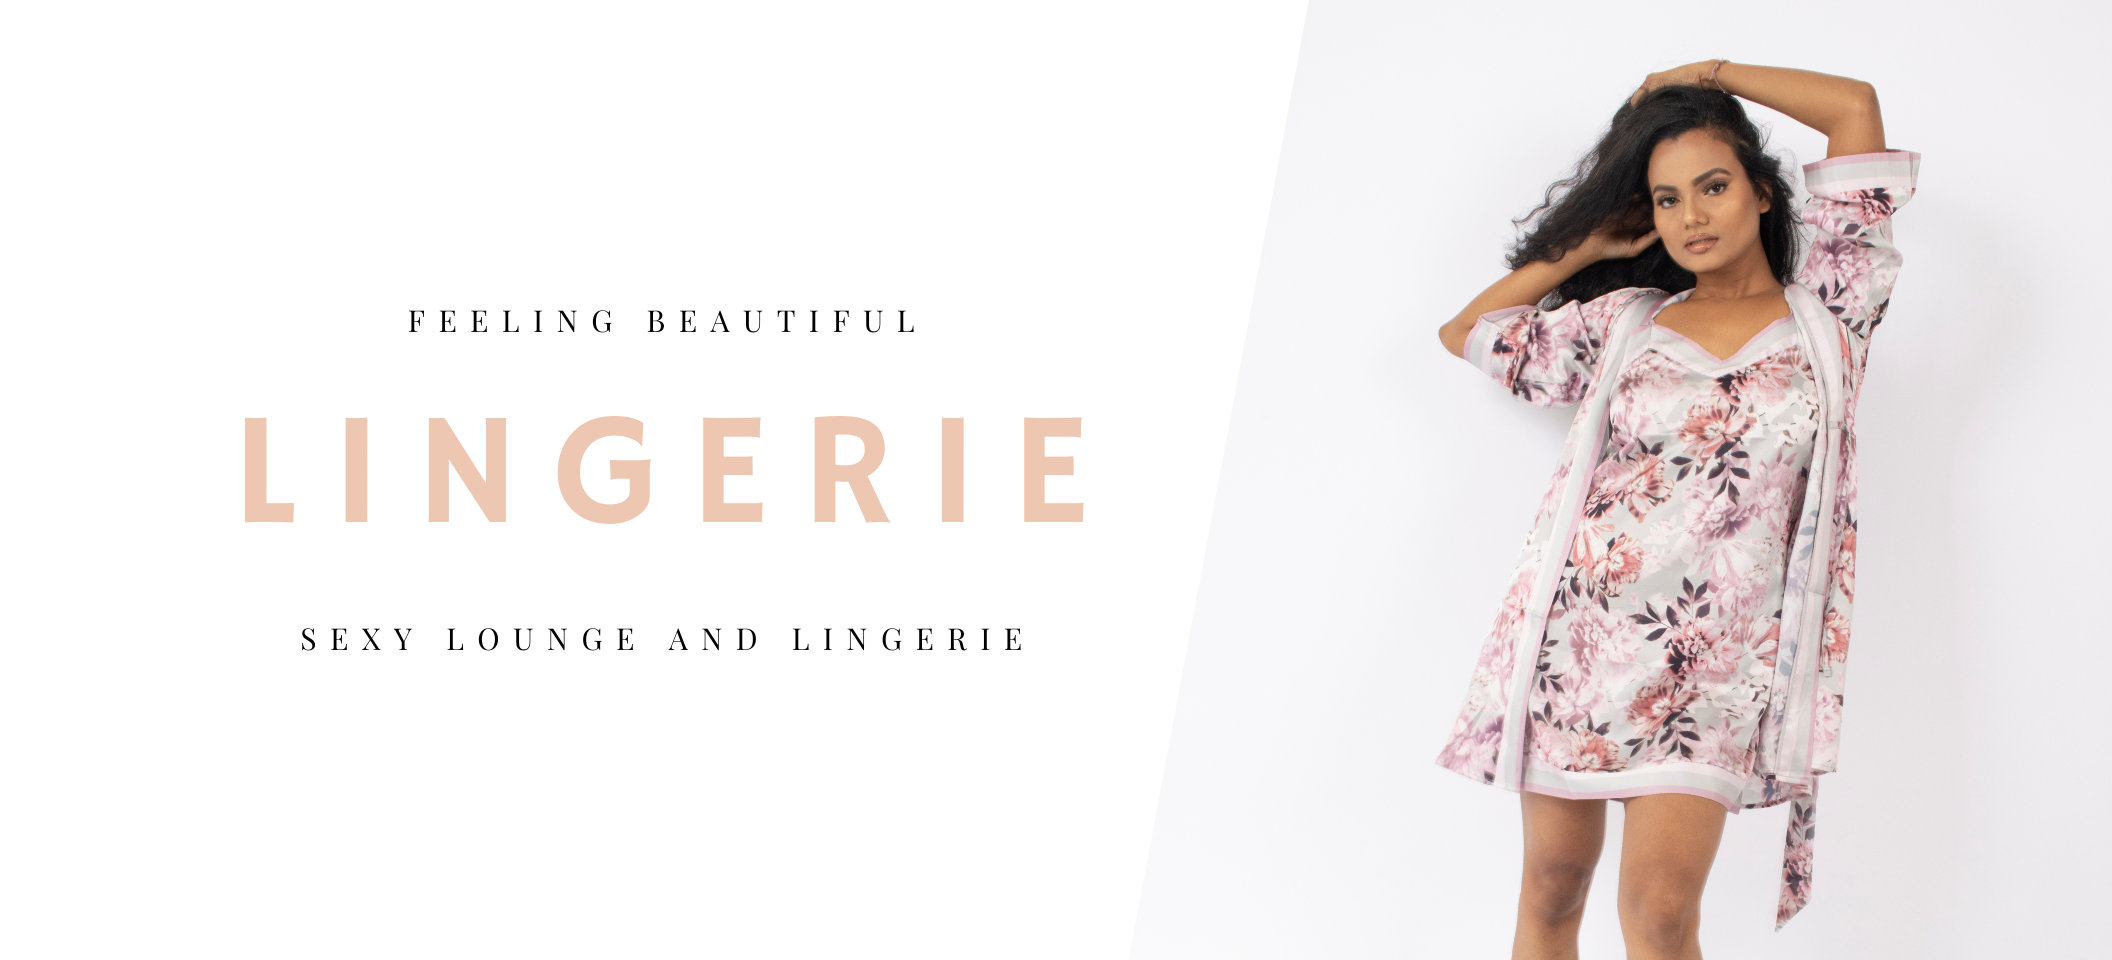 lingerie, lounge, chemise, floral, pink, grey, robe, loungewear, lounge wear, floral, sexy lingerie